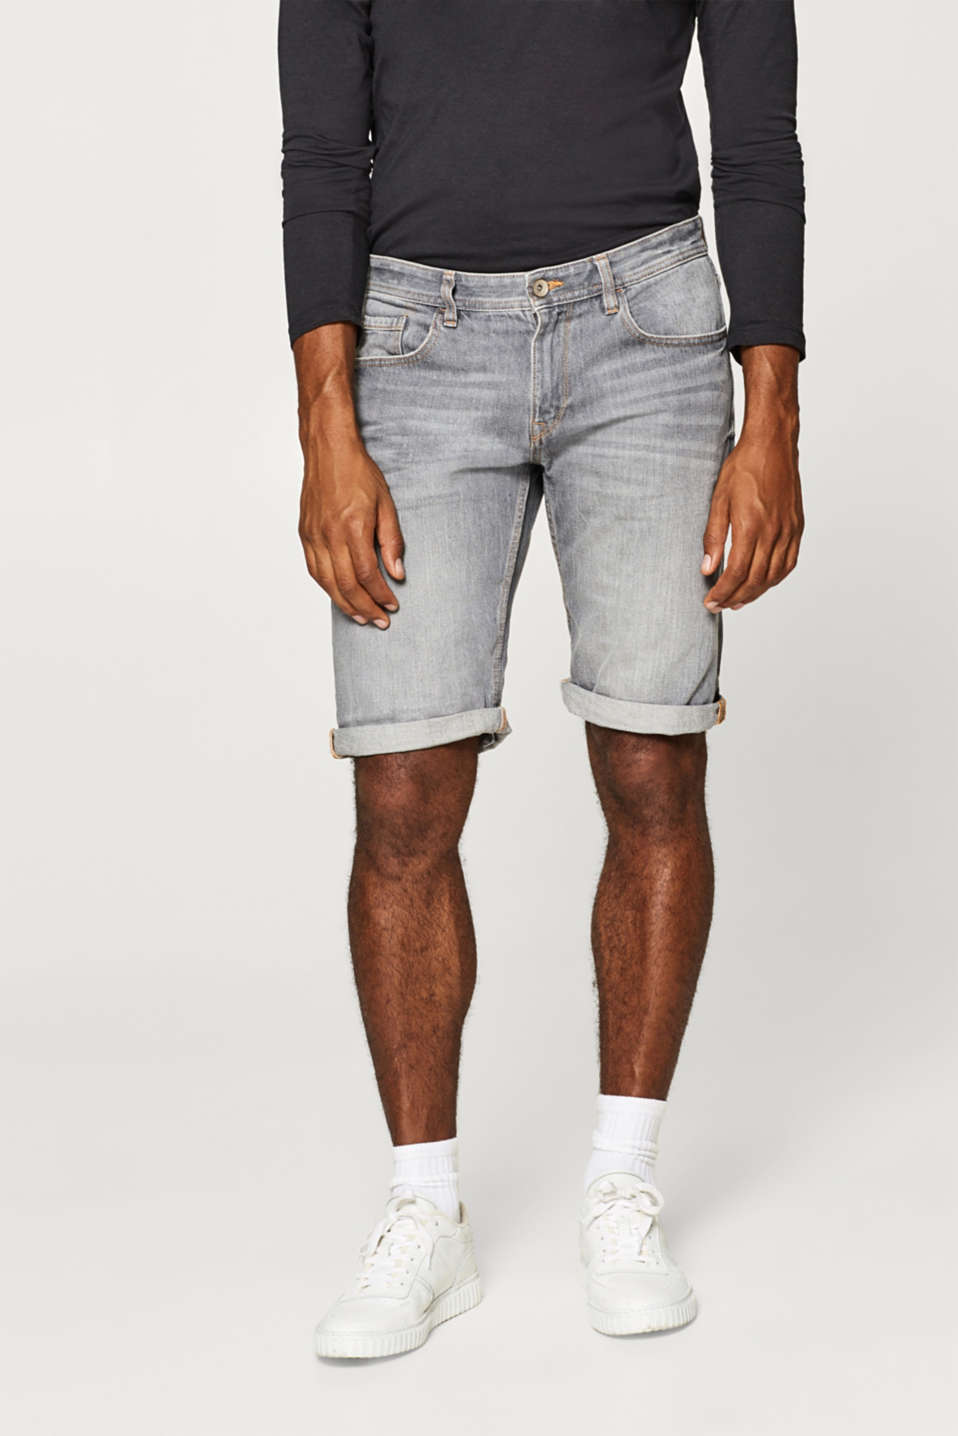 Esprit - With linen: denim shorts with vintage effects